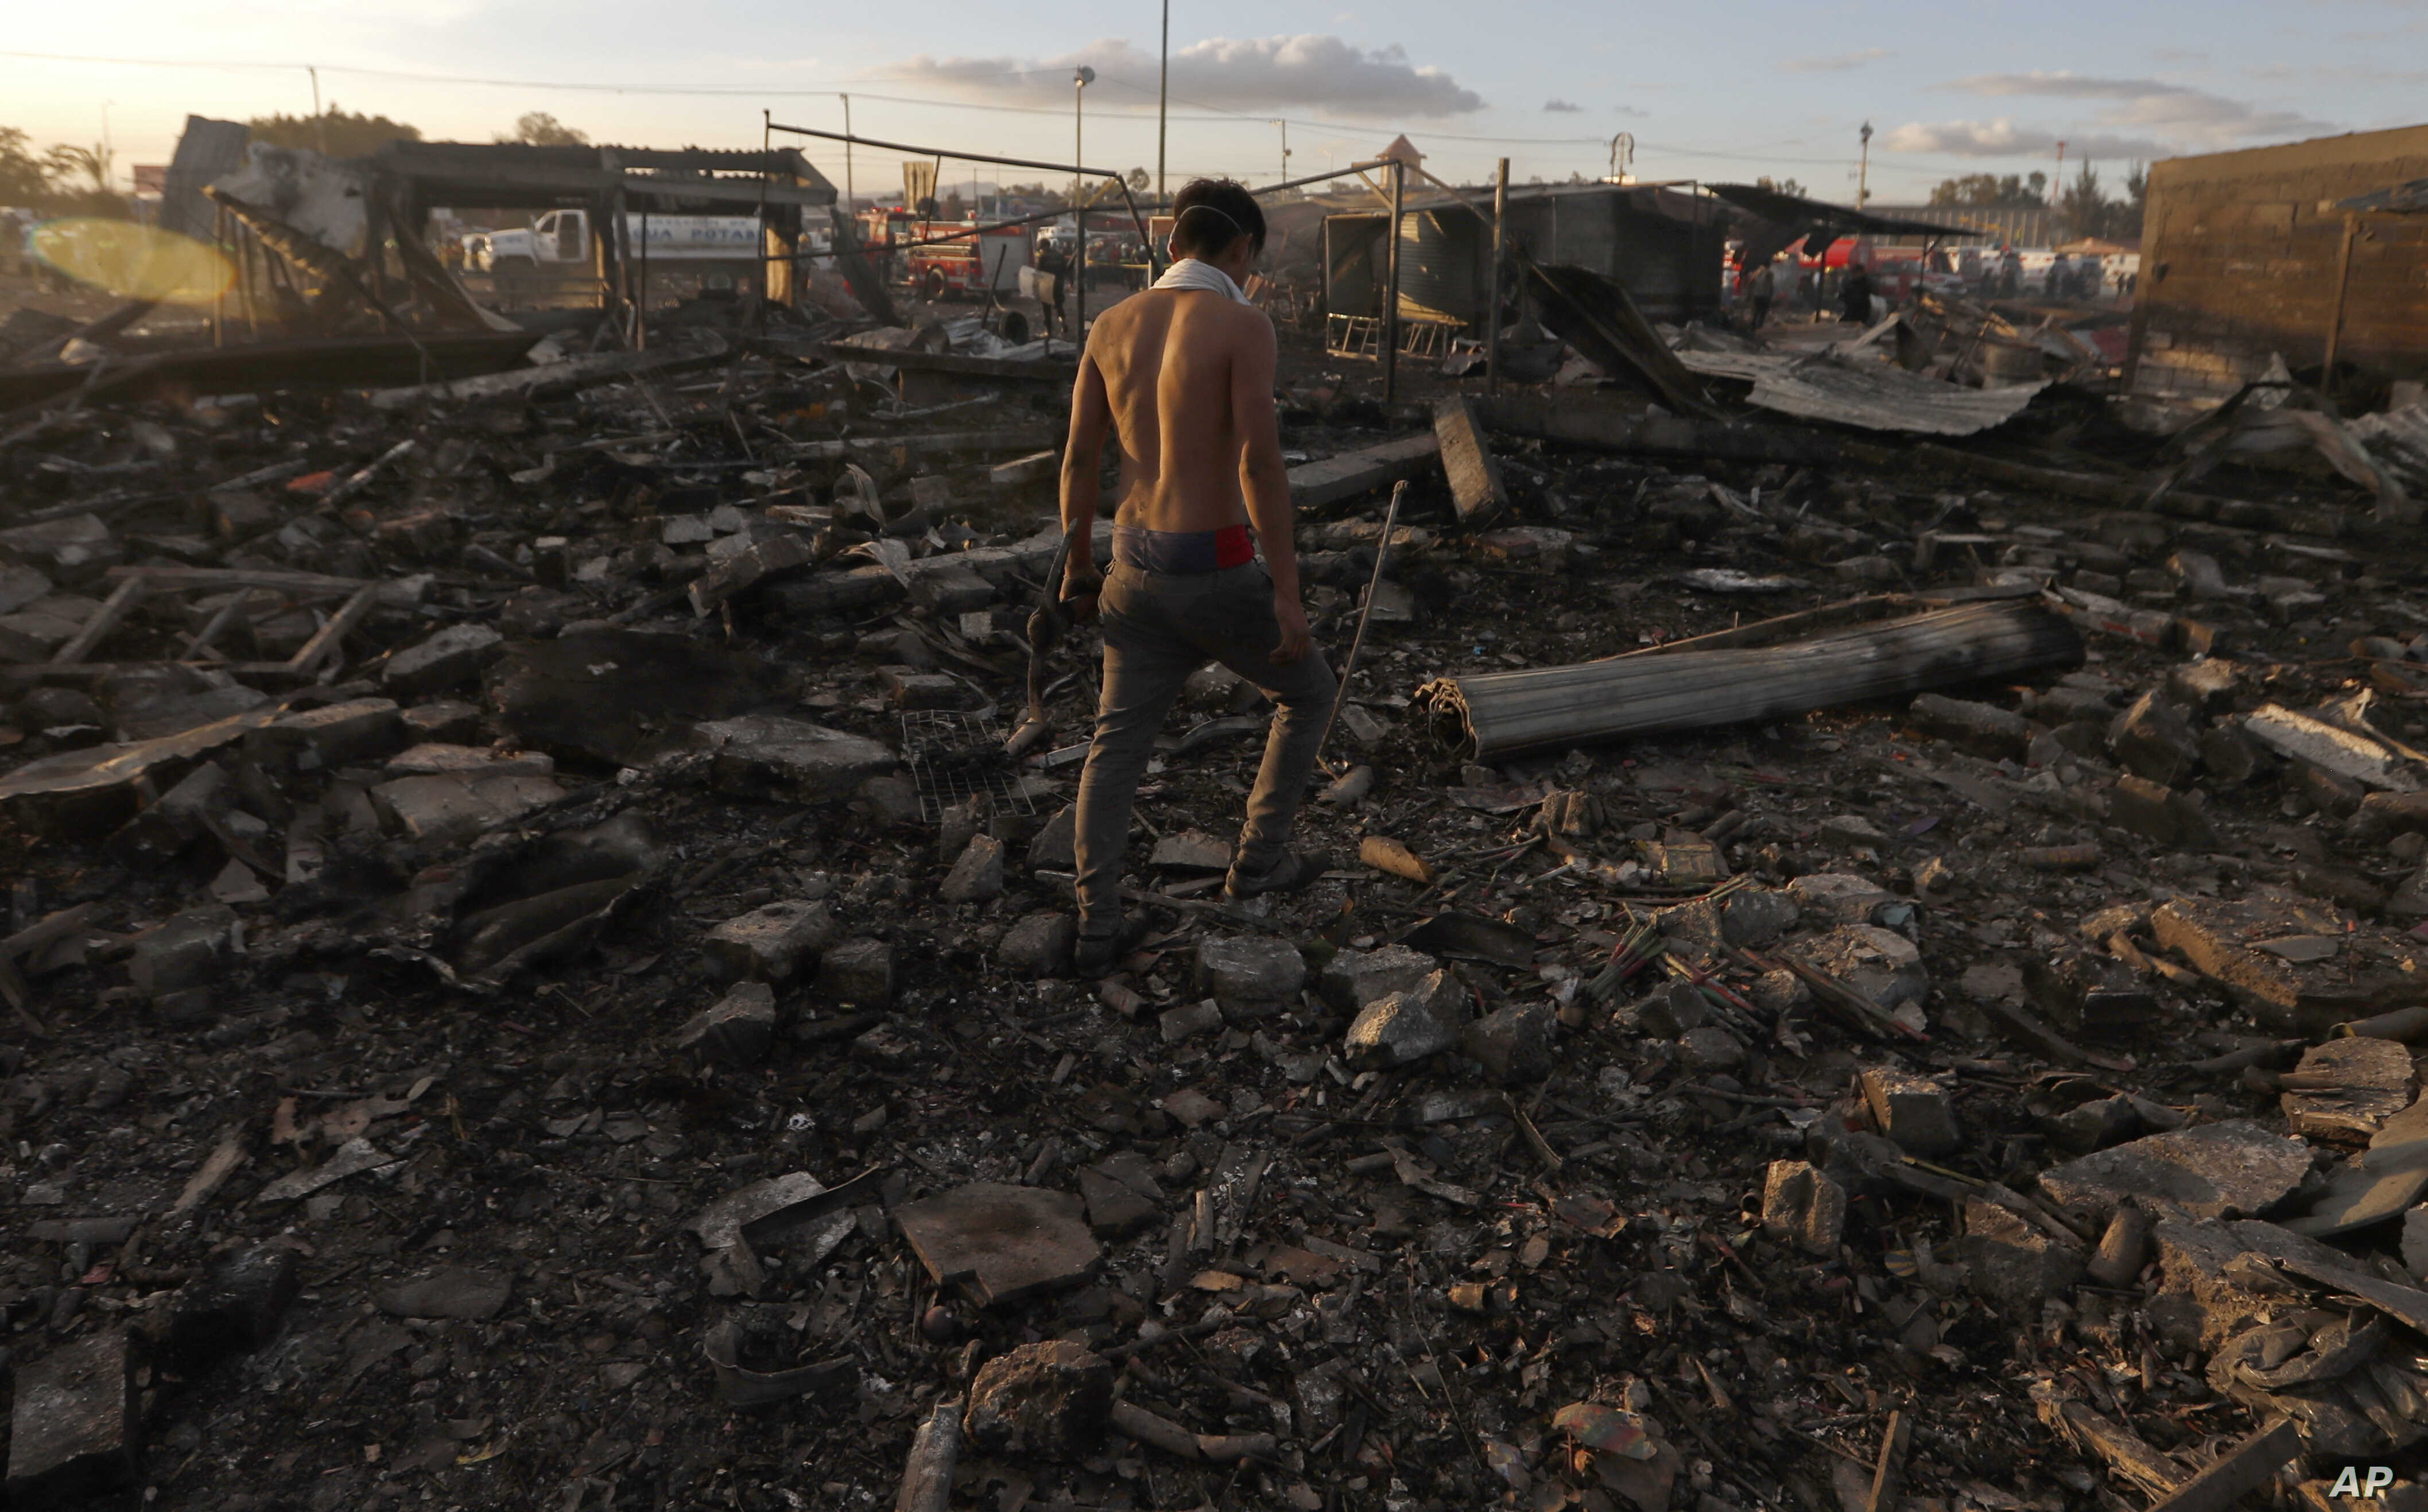 A man walks  through the scorched ground of the open-air San Pablito fireworks market, in Tultepec, outskirts of Mexico City, Mexico, Dec. 20, 2016.  An explosion ripped through Mexico's best-known fireworks market where most of the fireworks stal...